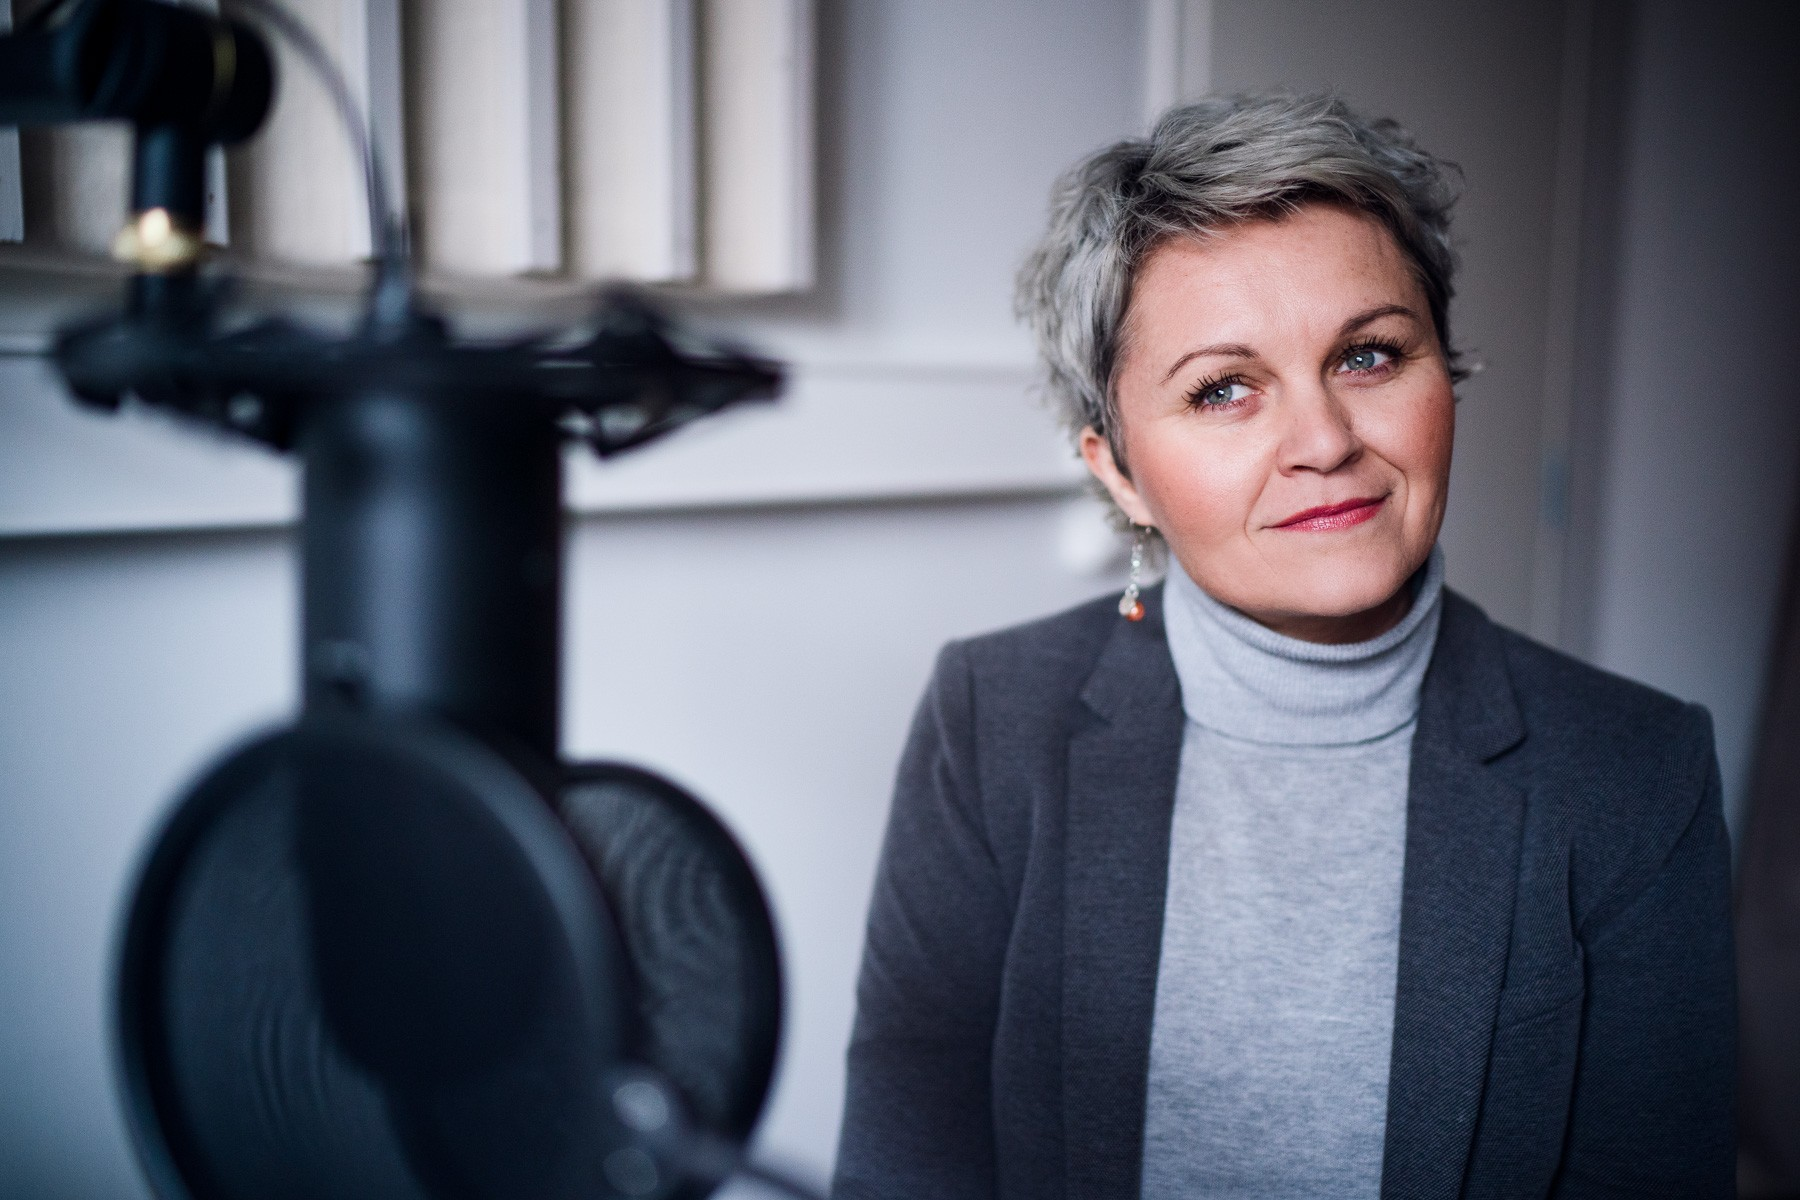 Lubica Kangas on finding the candidate you need